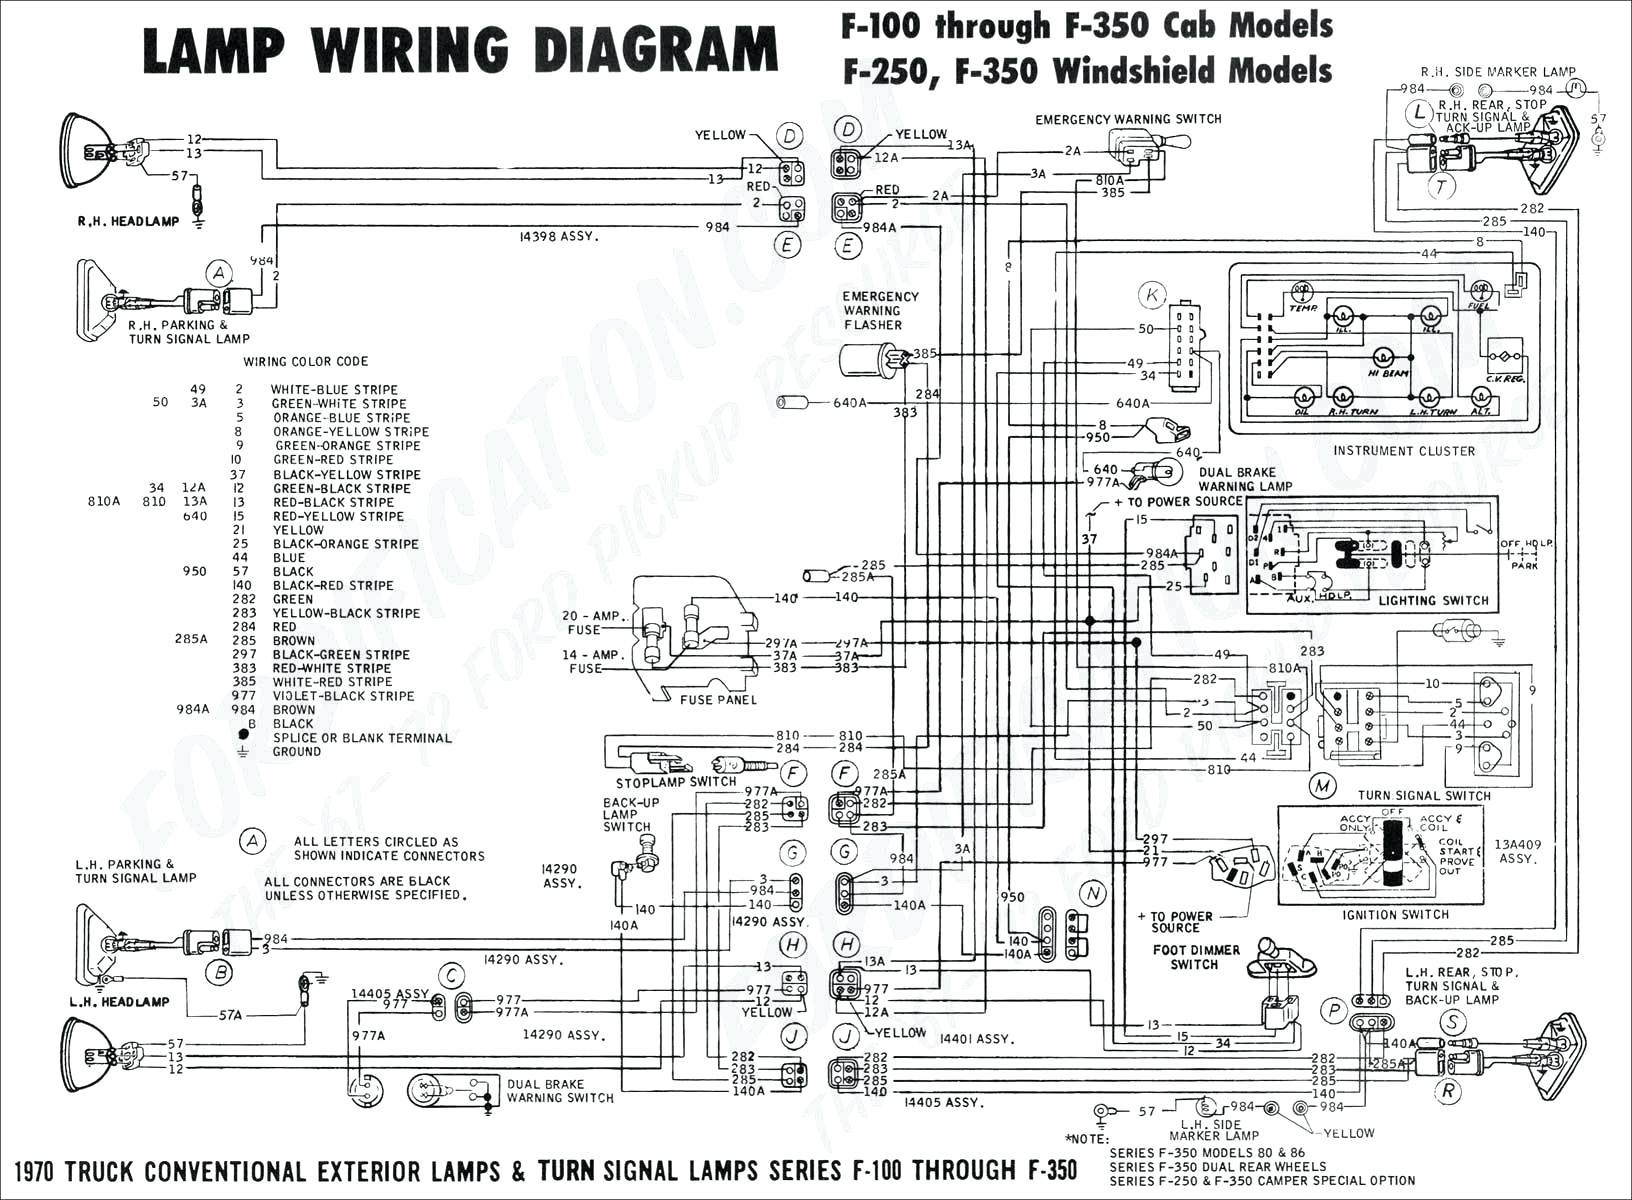 1971 Mustang Wiring Diagram Detailed Schematics 1969 Arctic Cat Fastback Ignition Schematic Diagrams 97 Cougar Ford